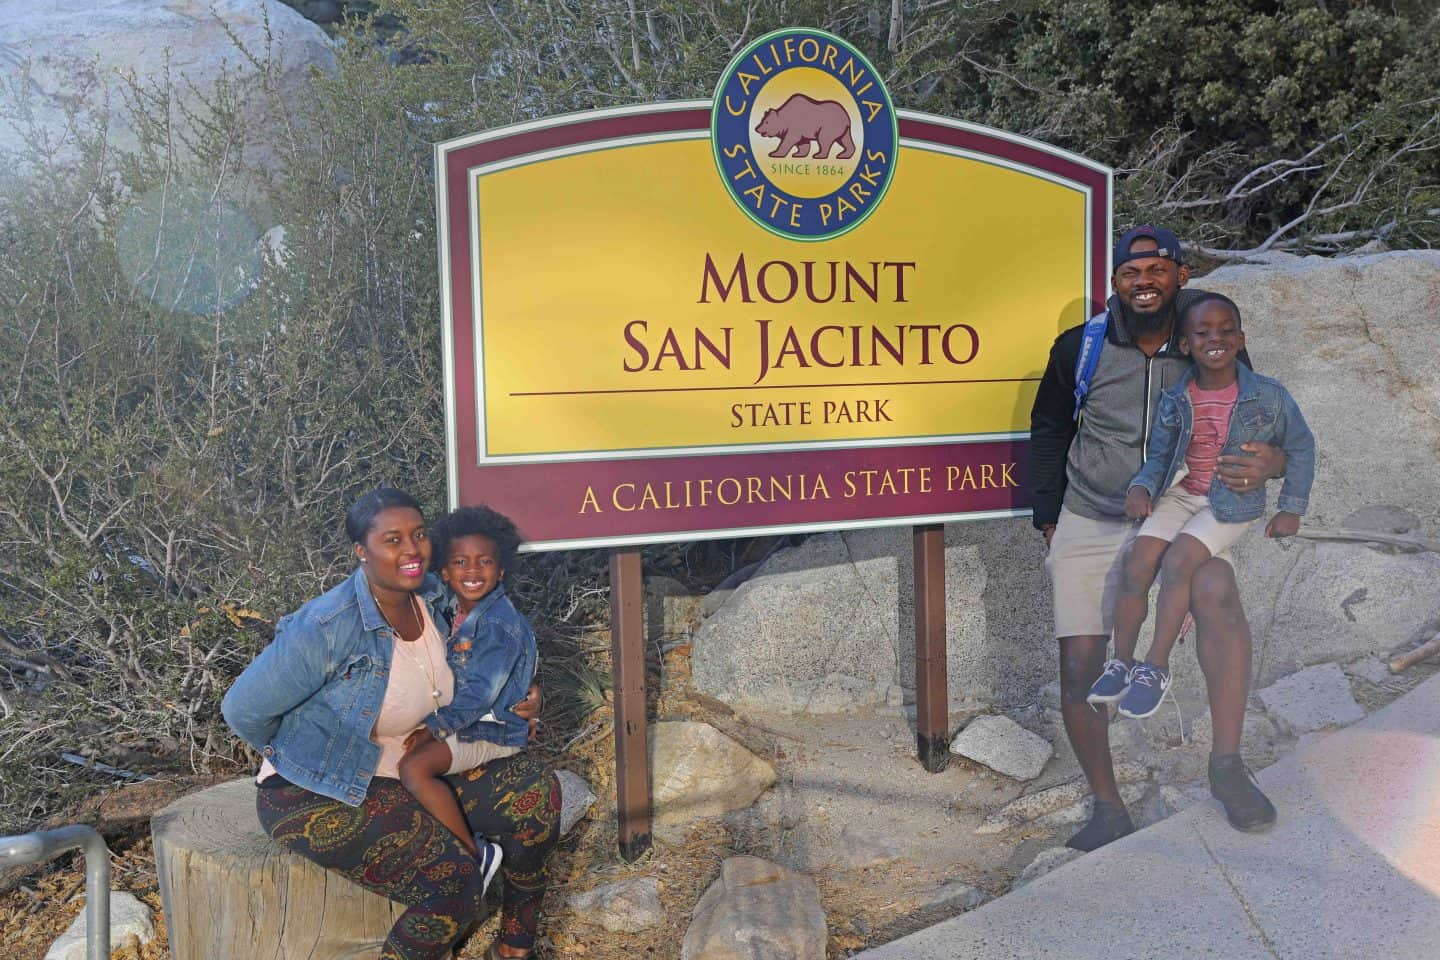 Family visiting Mount San Jacinto State Park